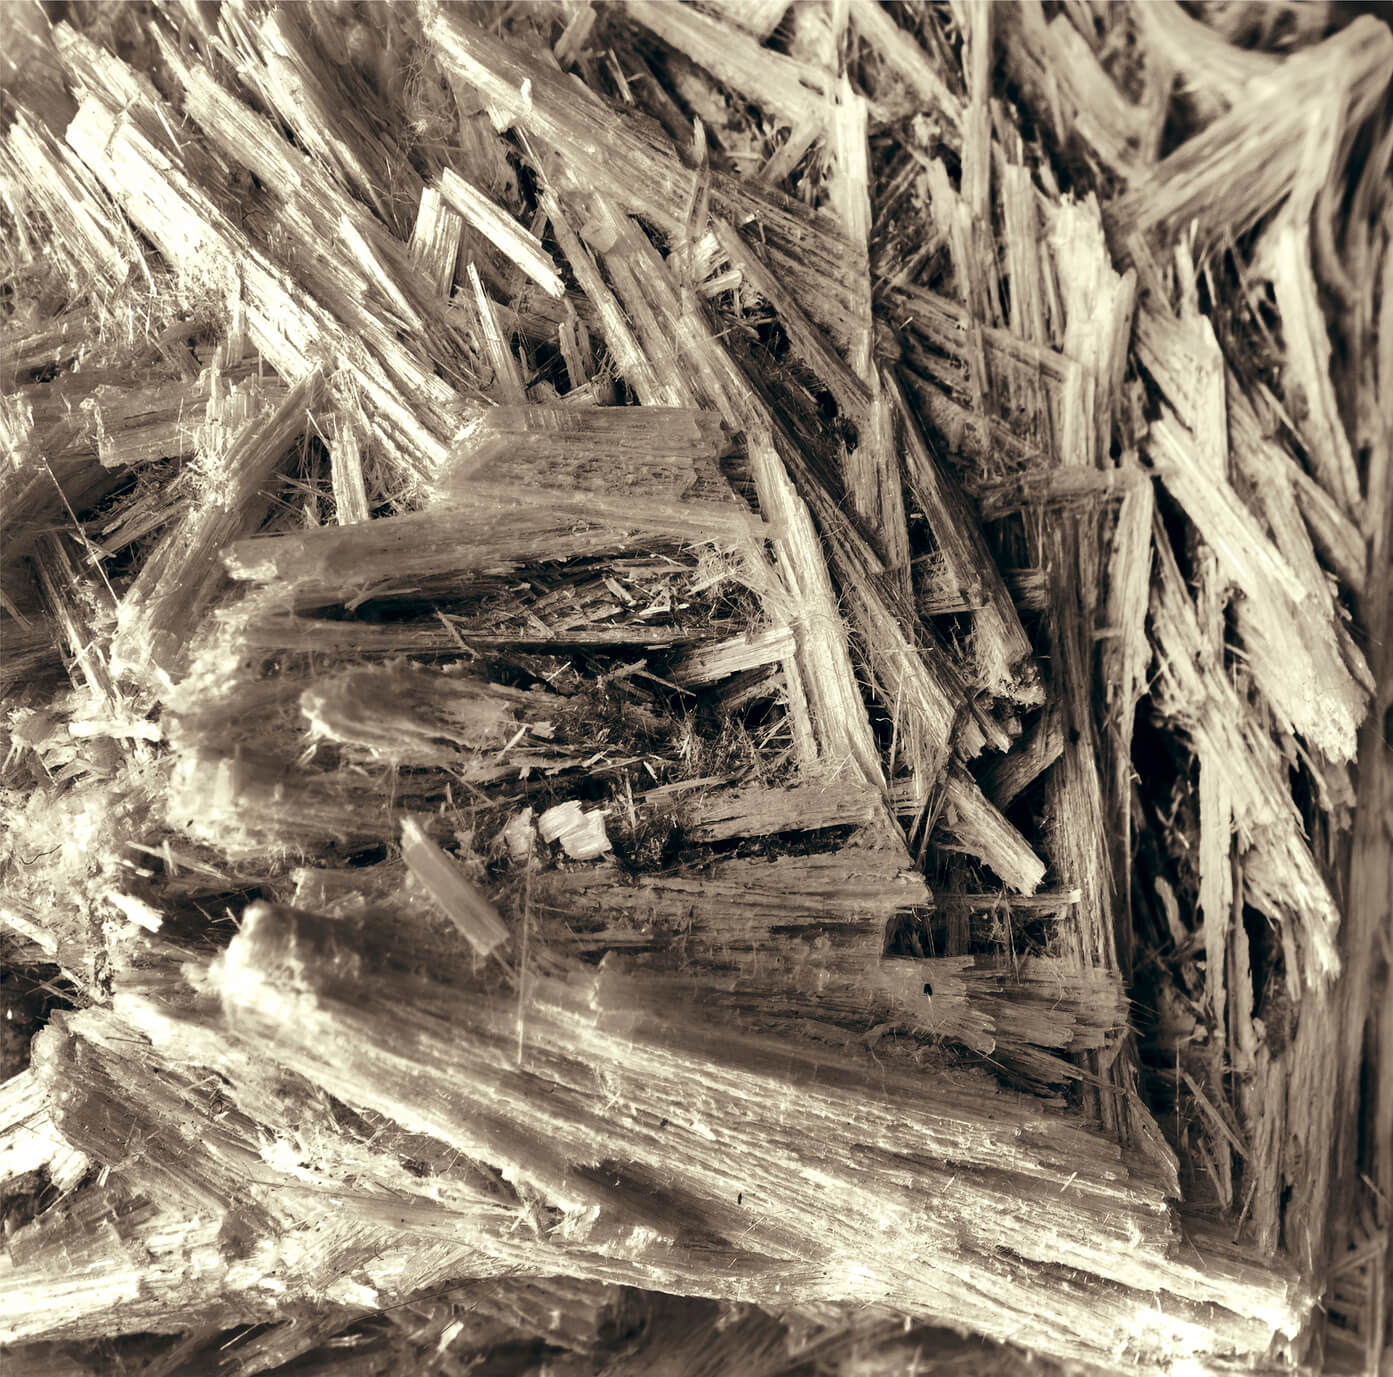 Asbestos Fibers In The Air : Your complete guide to asbestosis compensation claims